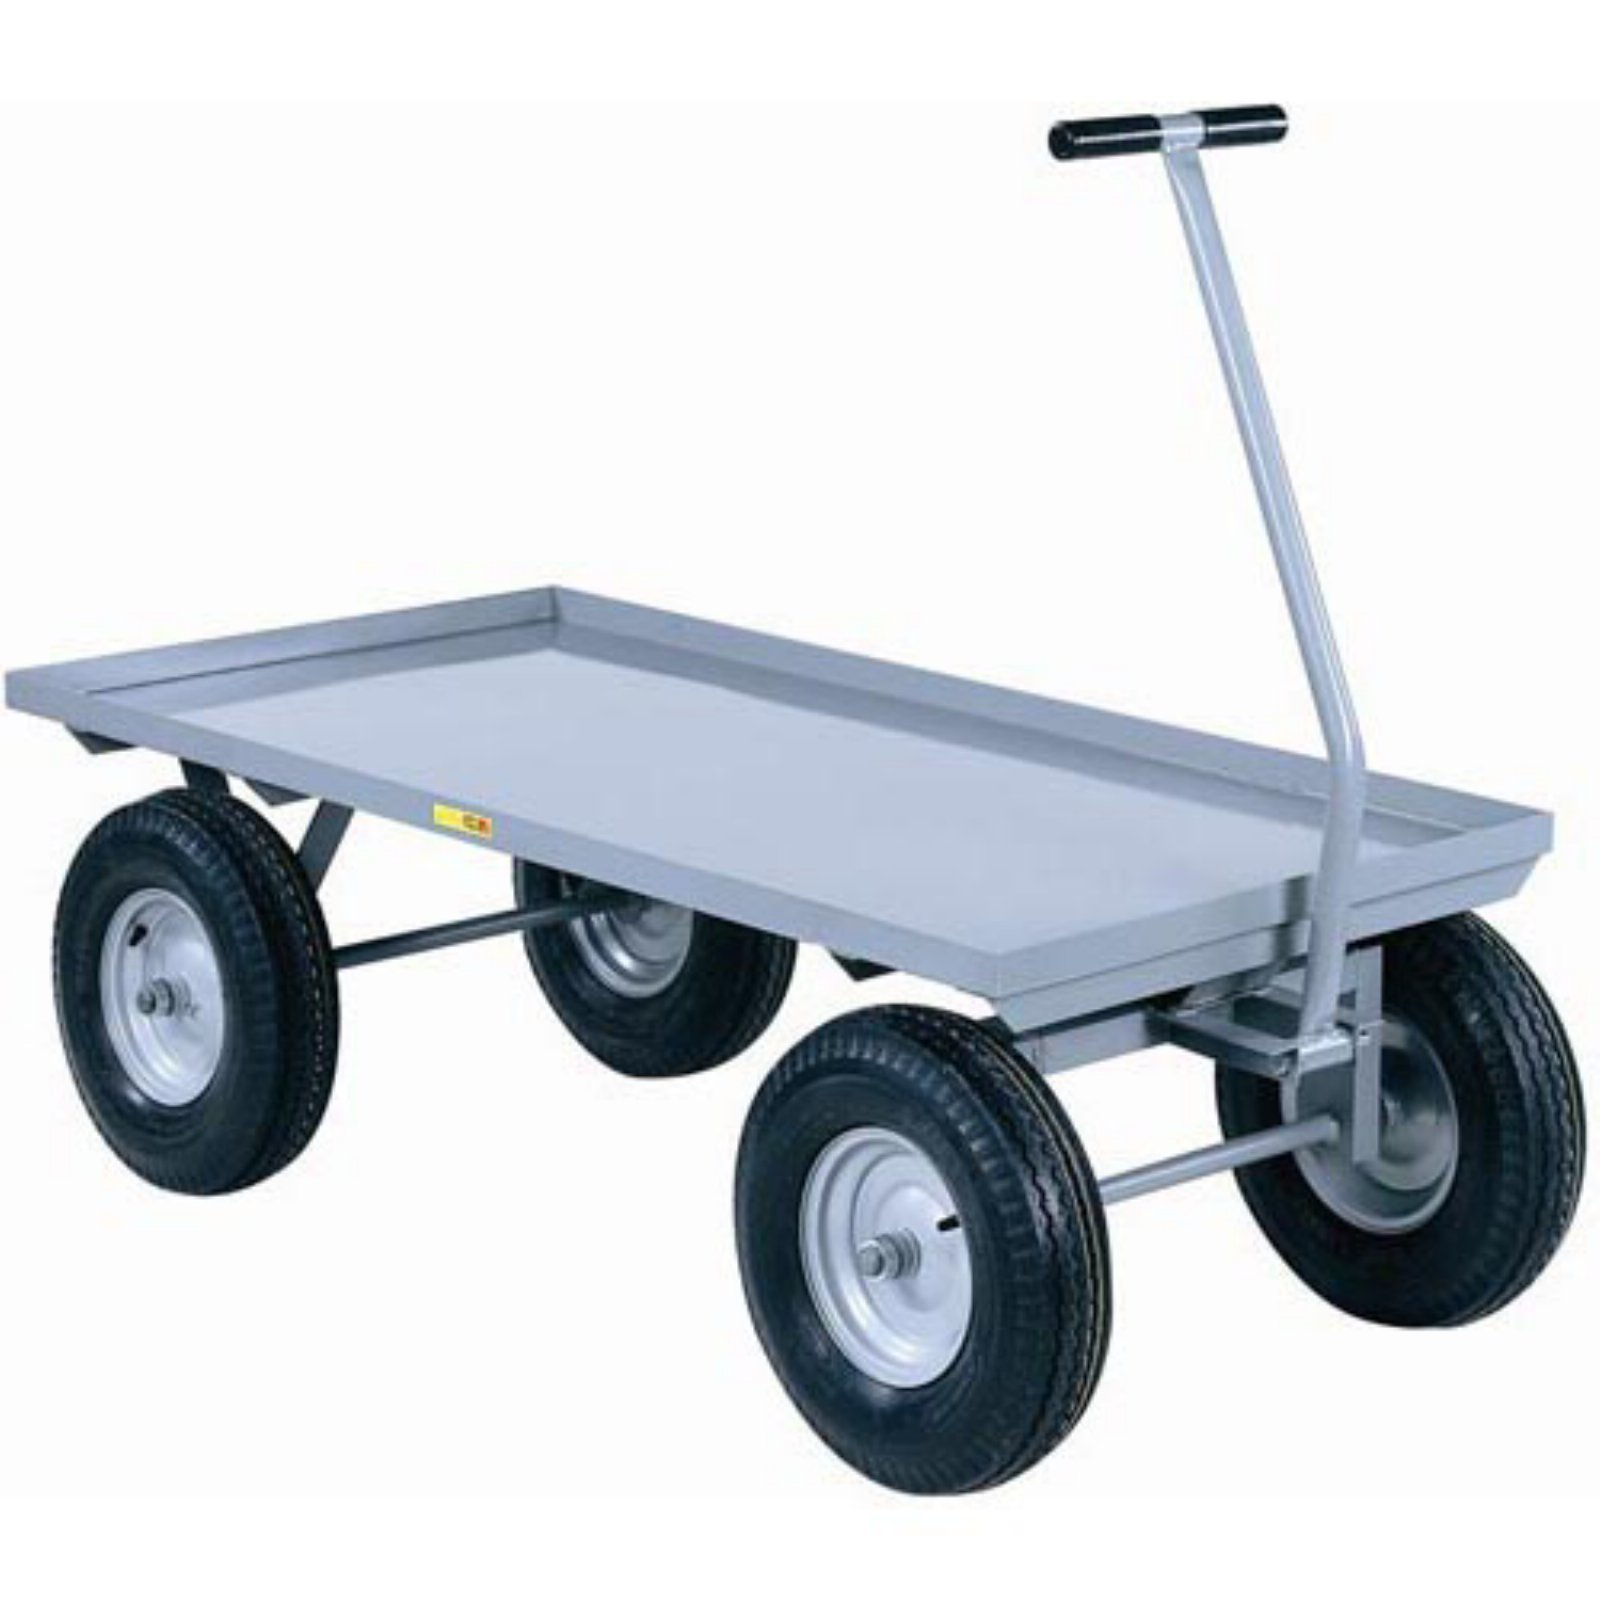 Little Giant Heavy Duty Wagon by Brennan Equipment and Manufacturing Inc